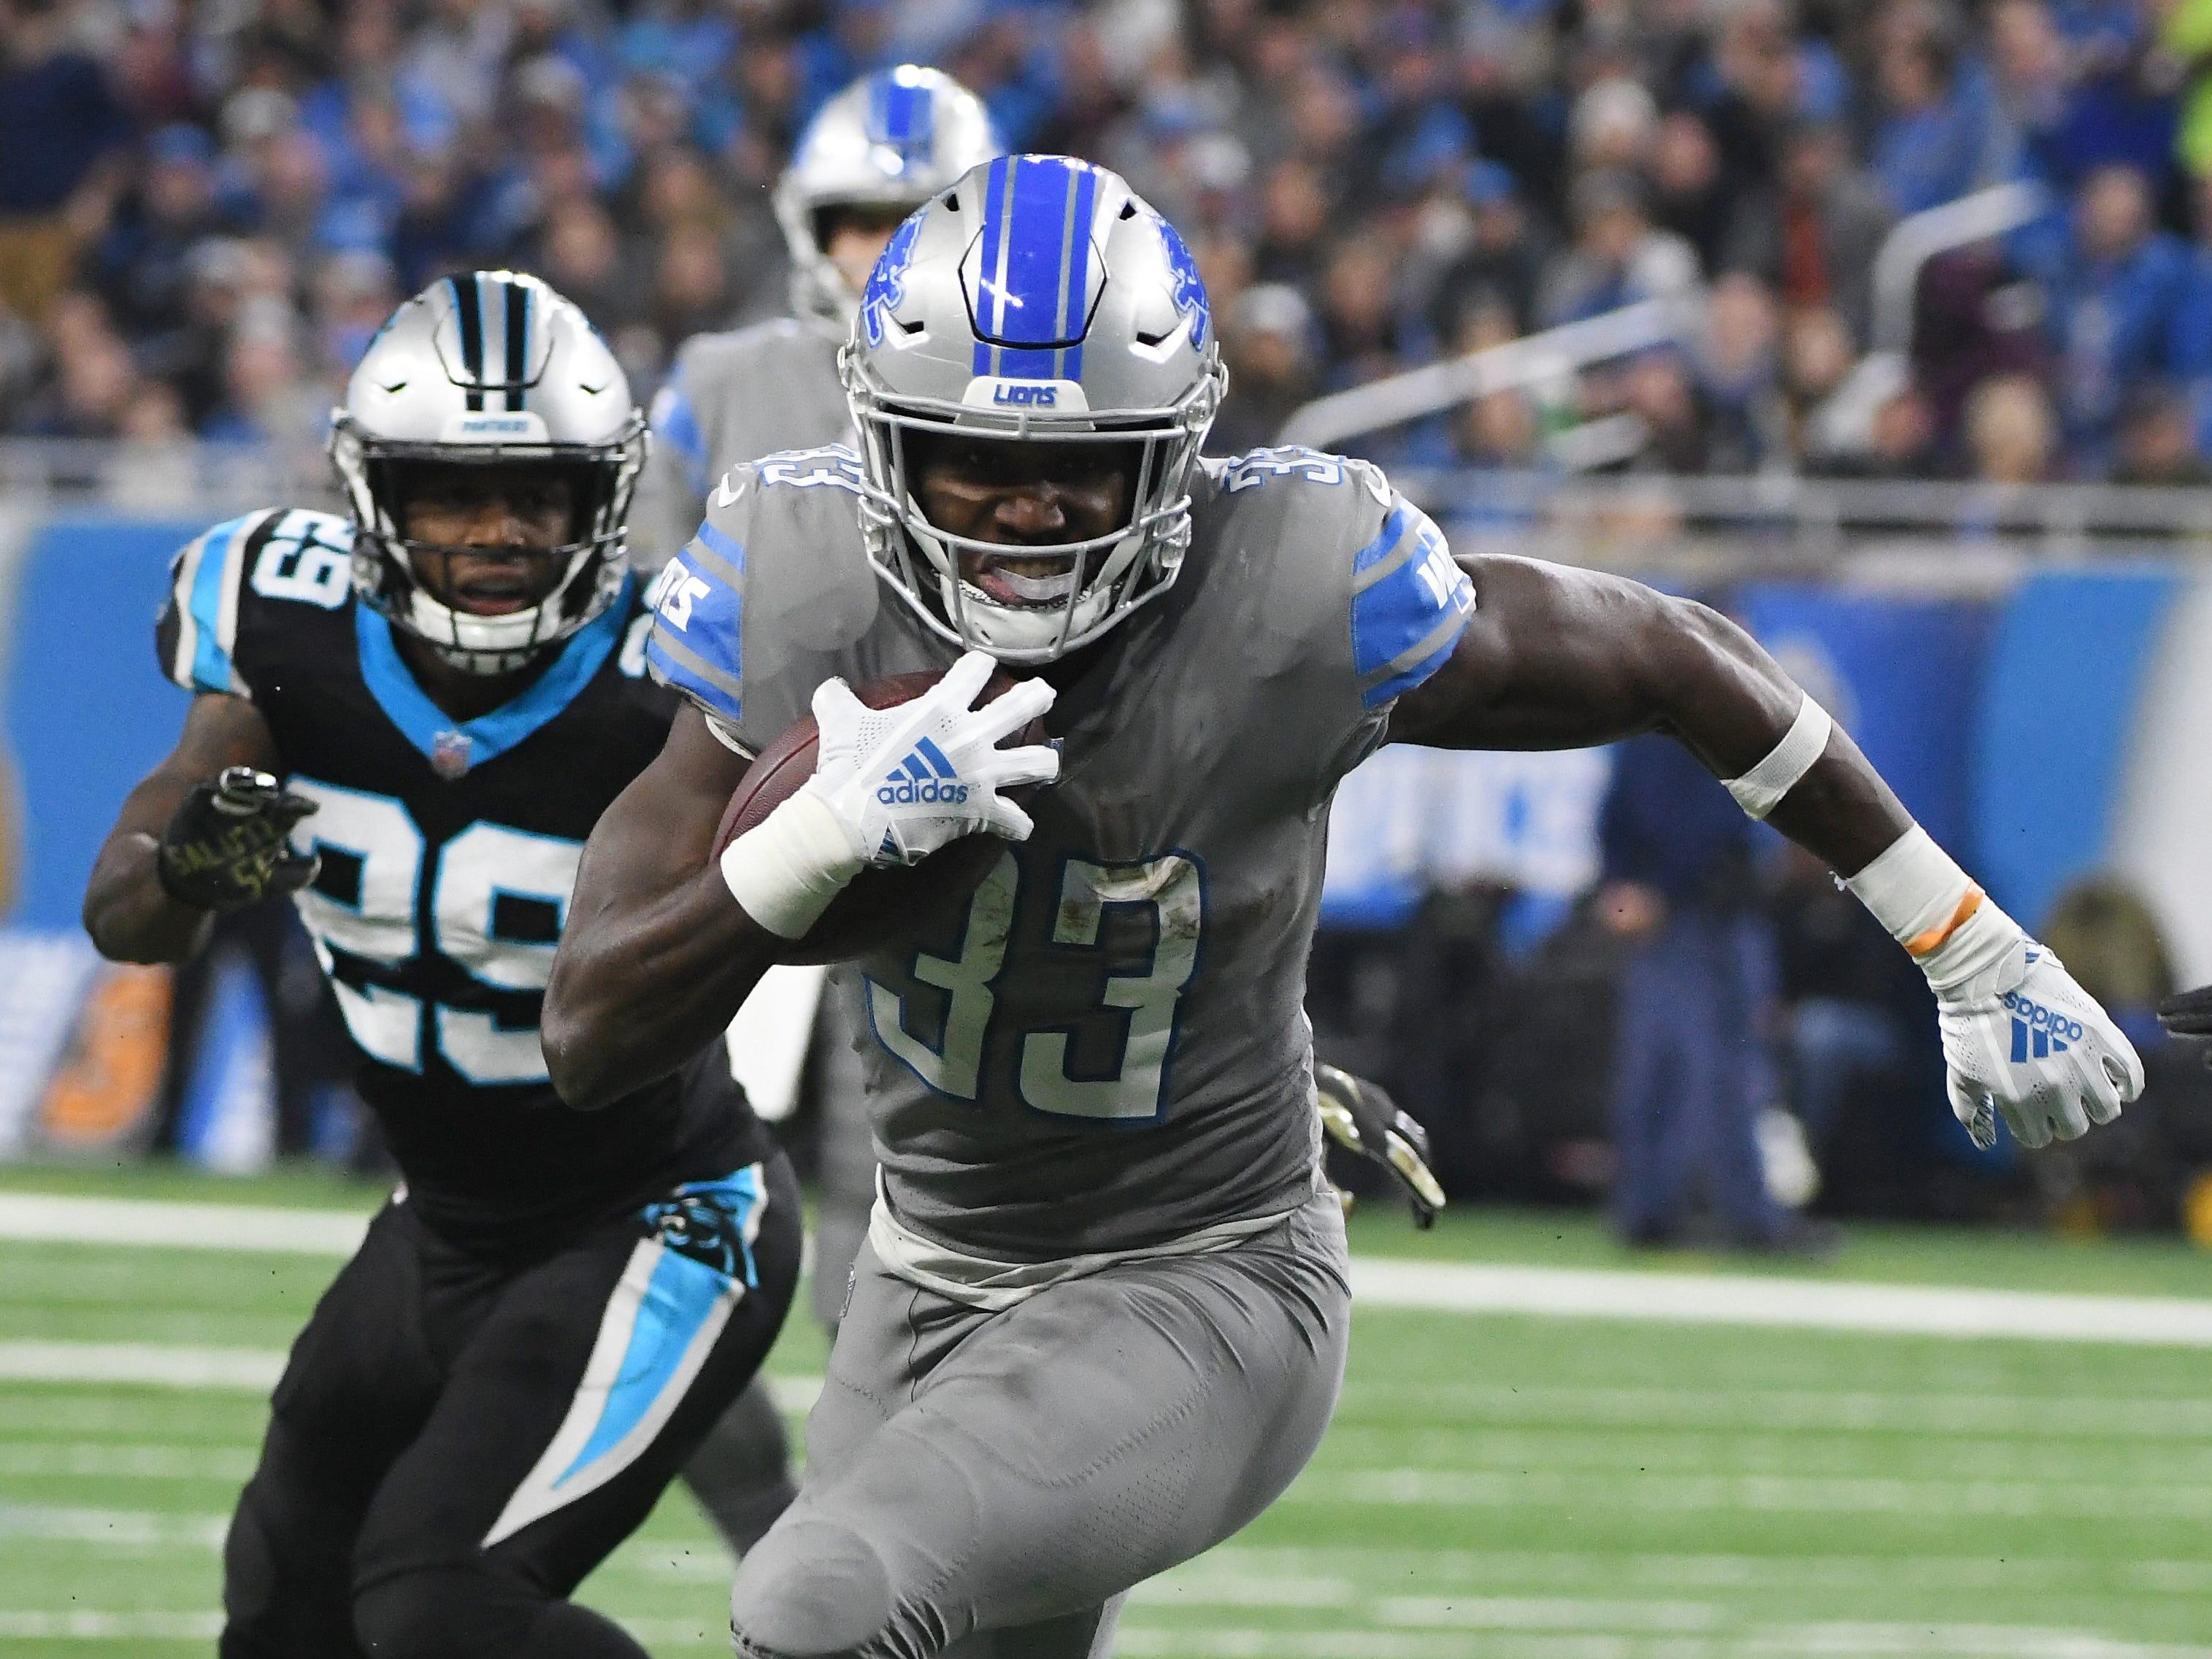 Lions running back Kerryon Johnson works up field after a first quarter run.